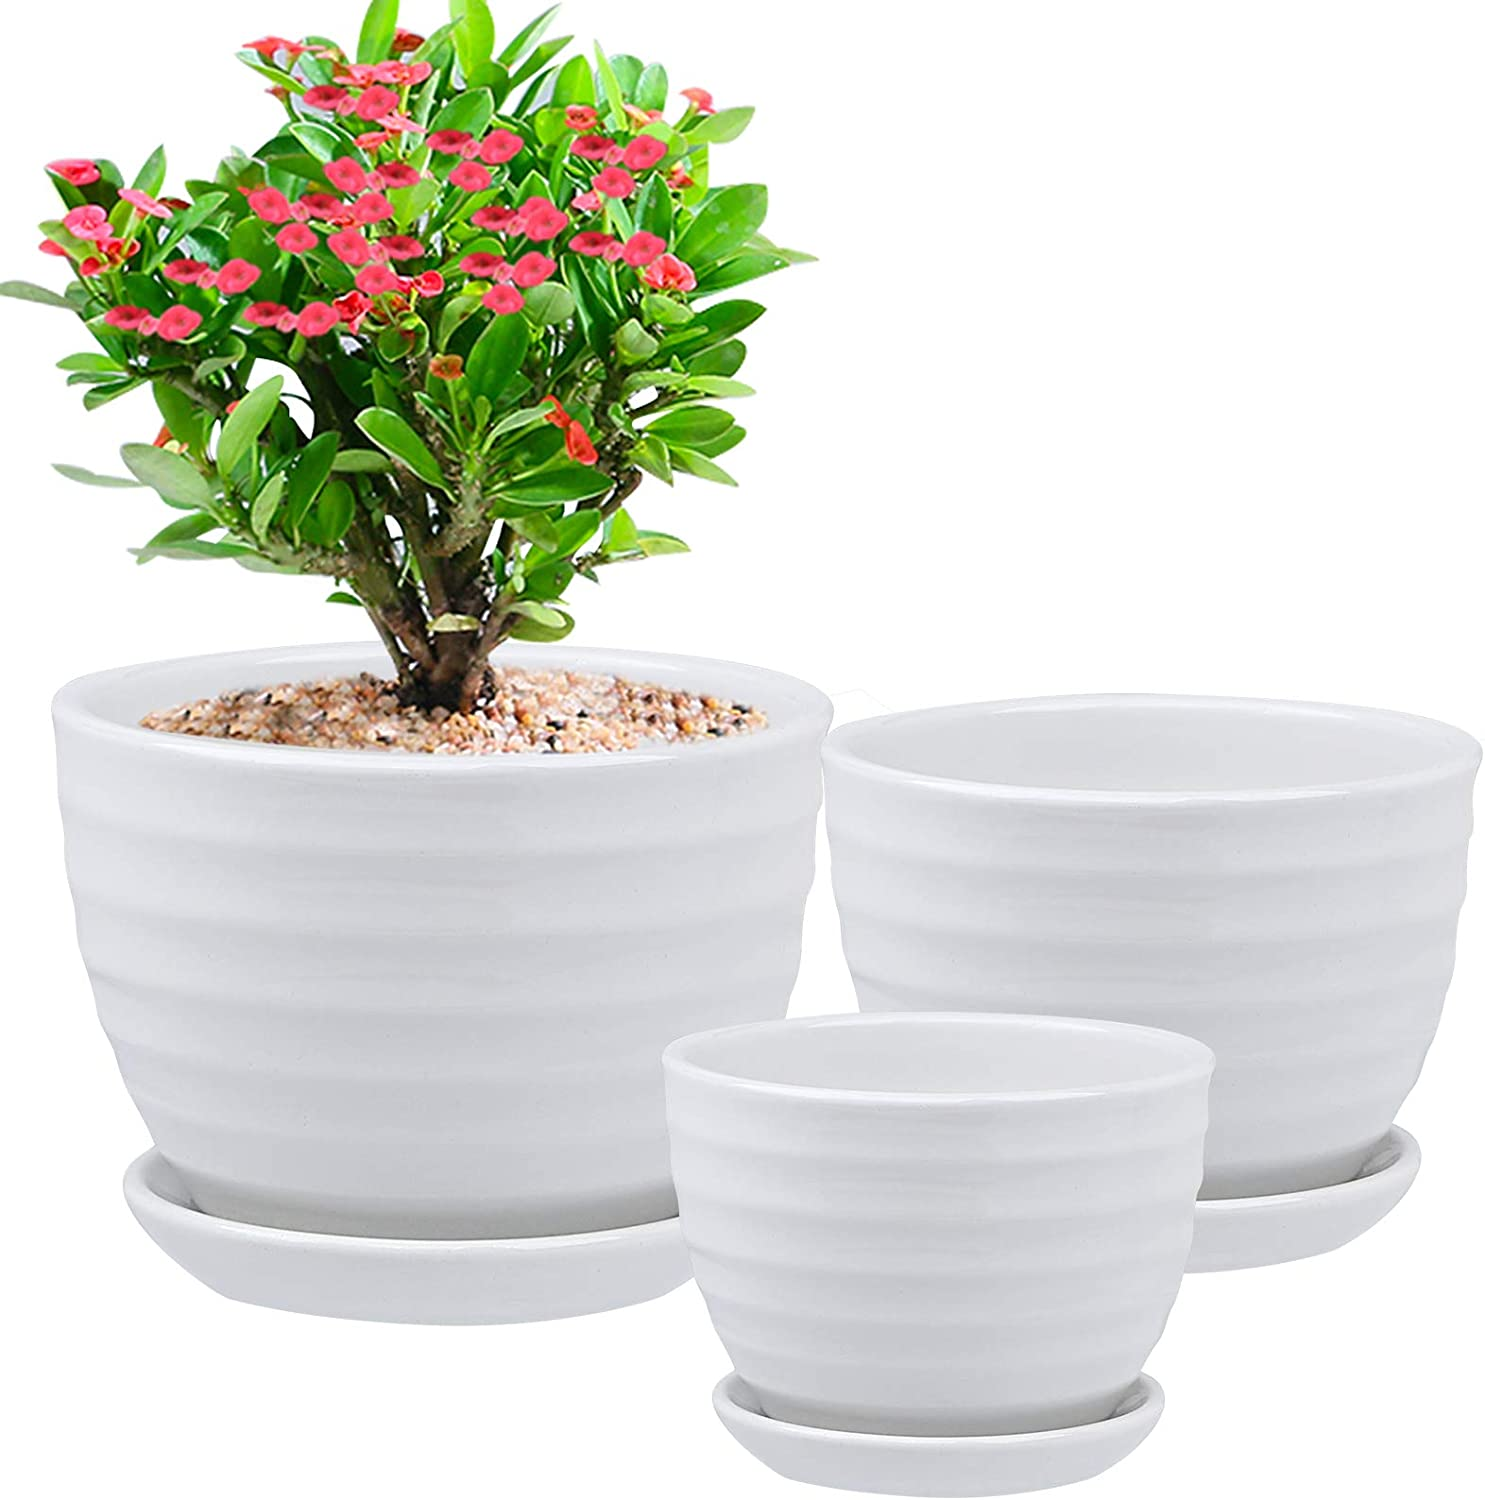 3 Pack Ceramic Plant Pots, (Crazystorey) White Garden Flower Pot Round Indoor Planters with Drainage Hole Saucer for All House Plants and Flowers Modern Home Decor, Large, Small, Medium (Style 2)